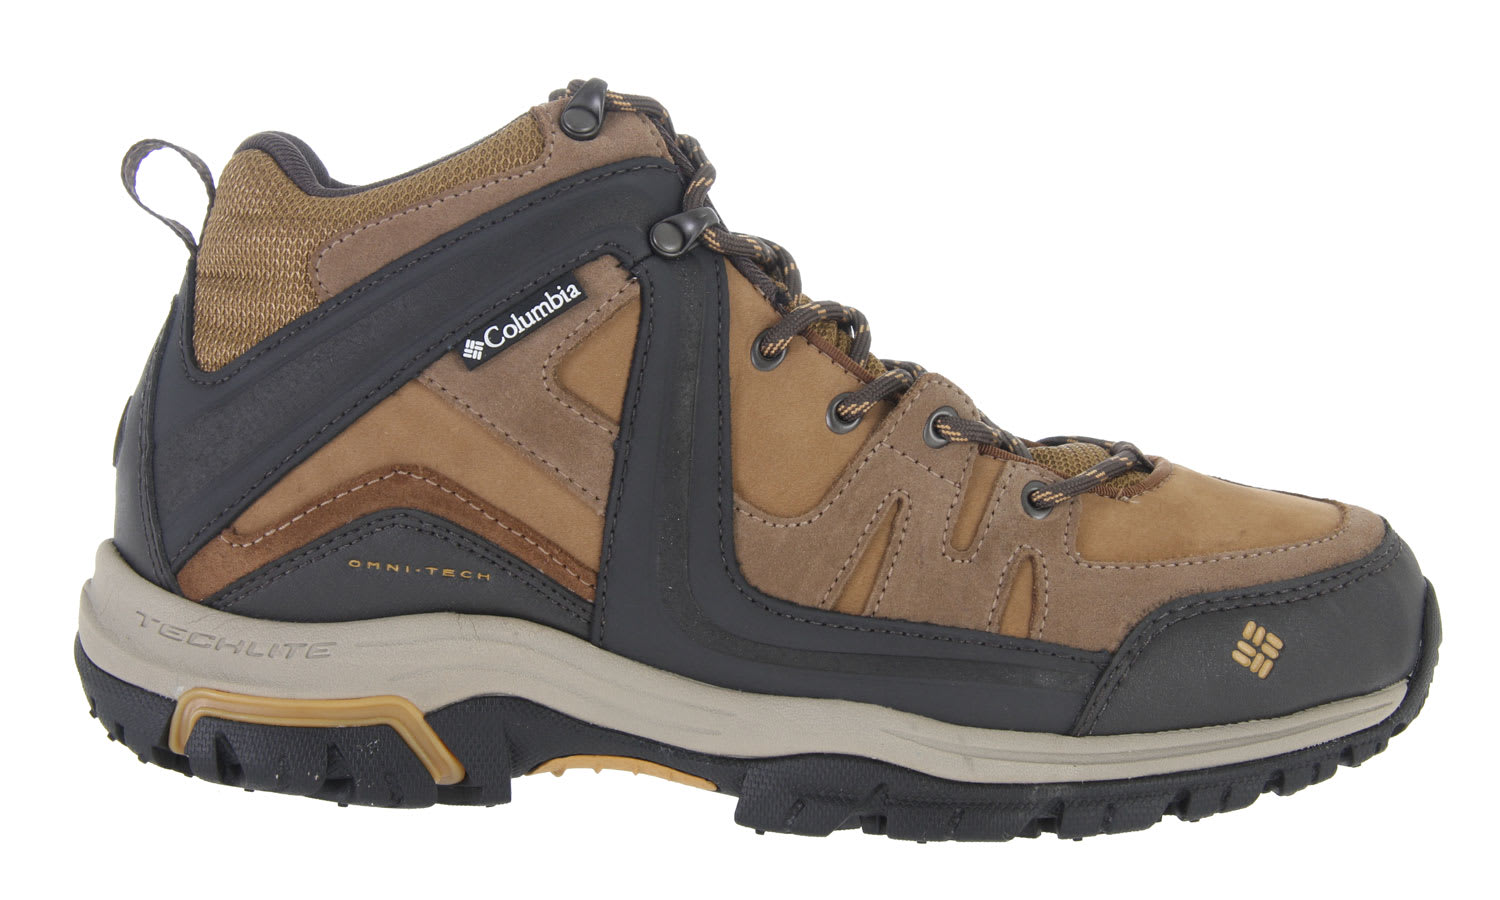 Shop for Columbia Shastalavista Mid Leather Hiking Shoes Morrell Mocassin - Men's